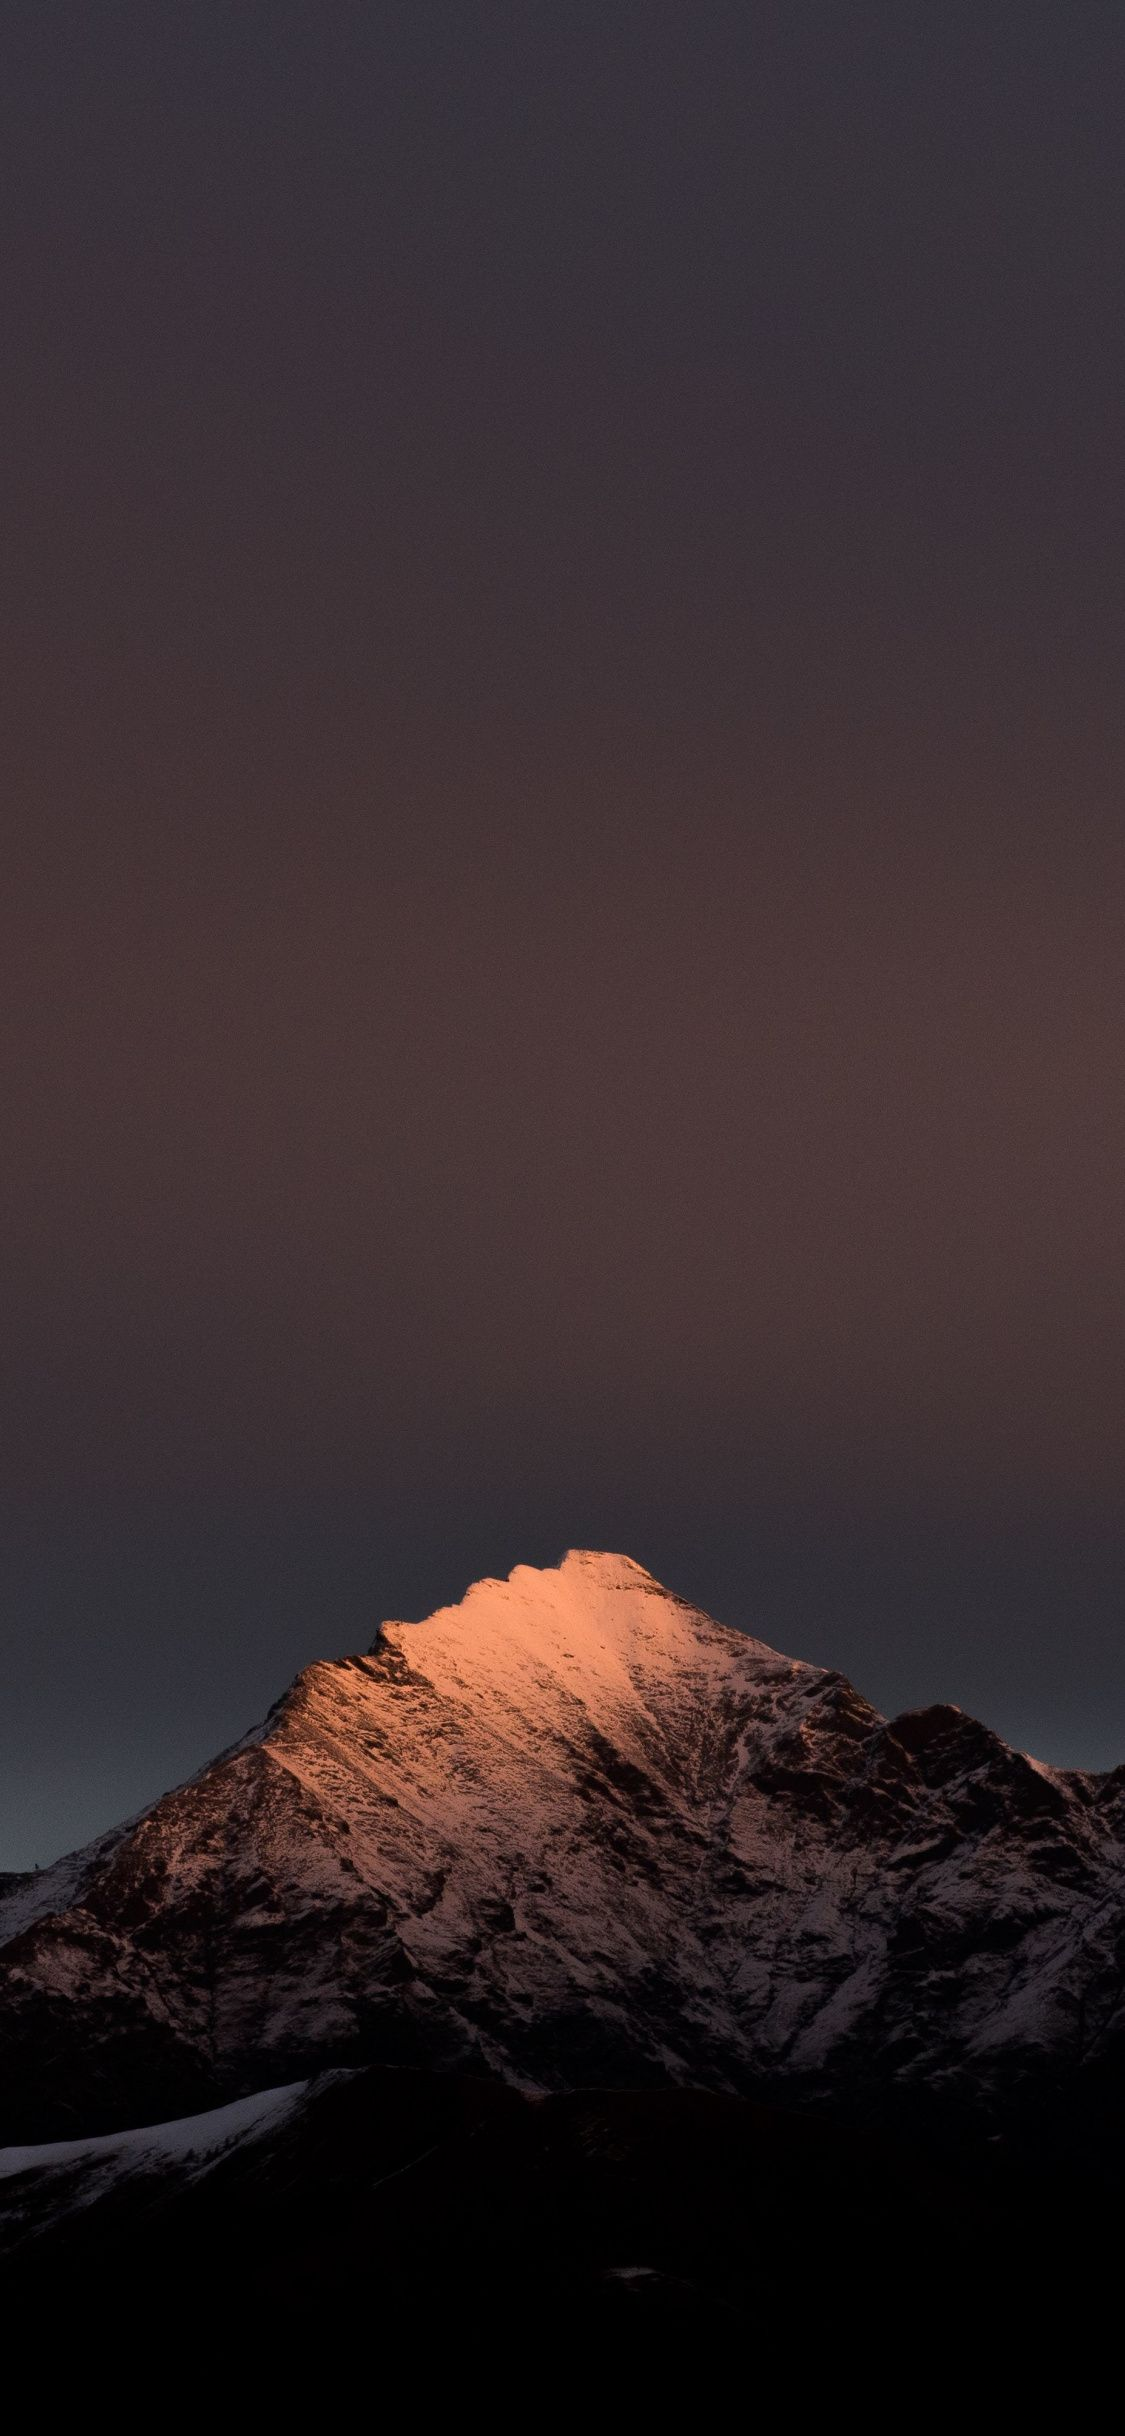 Evening Clean Sky Mountains Peak Nature 1125x2436 Wallpaper Iphone Wallpaper Landscape Nature Iphone Wallpaper Oneplus Wallpapers